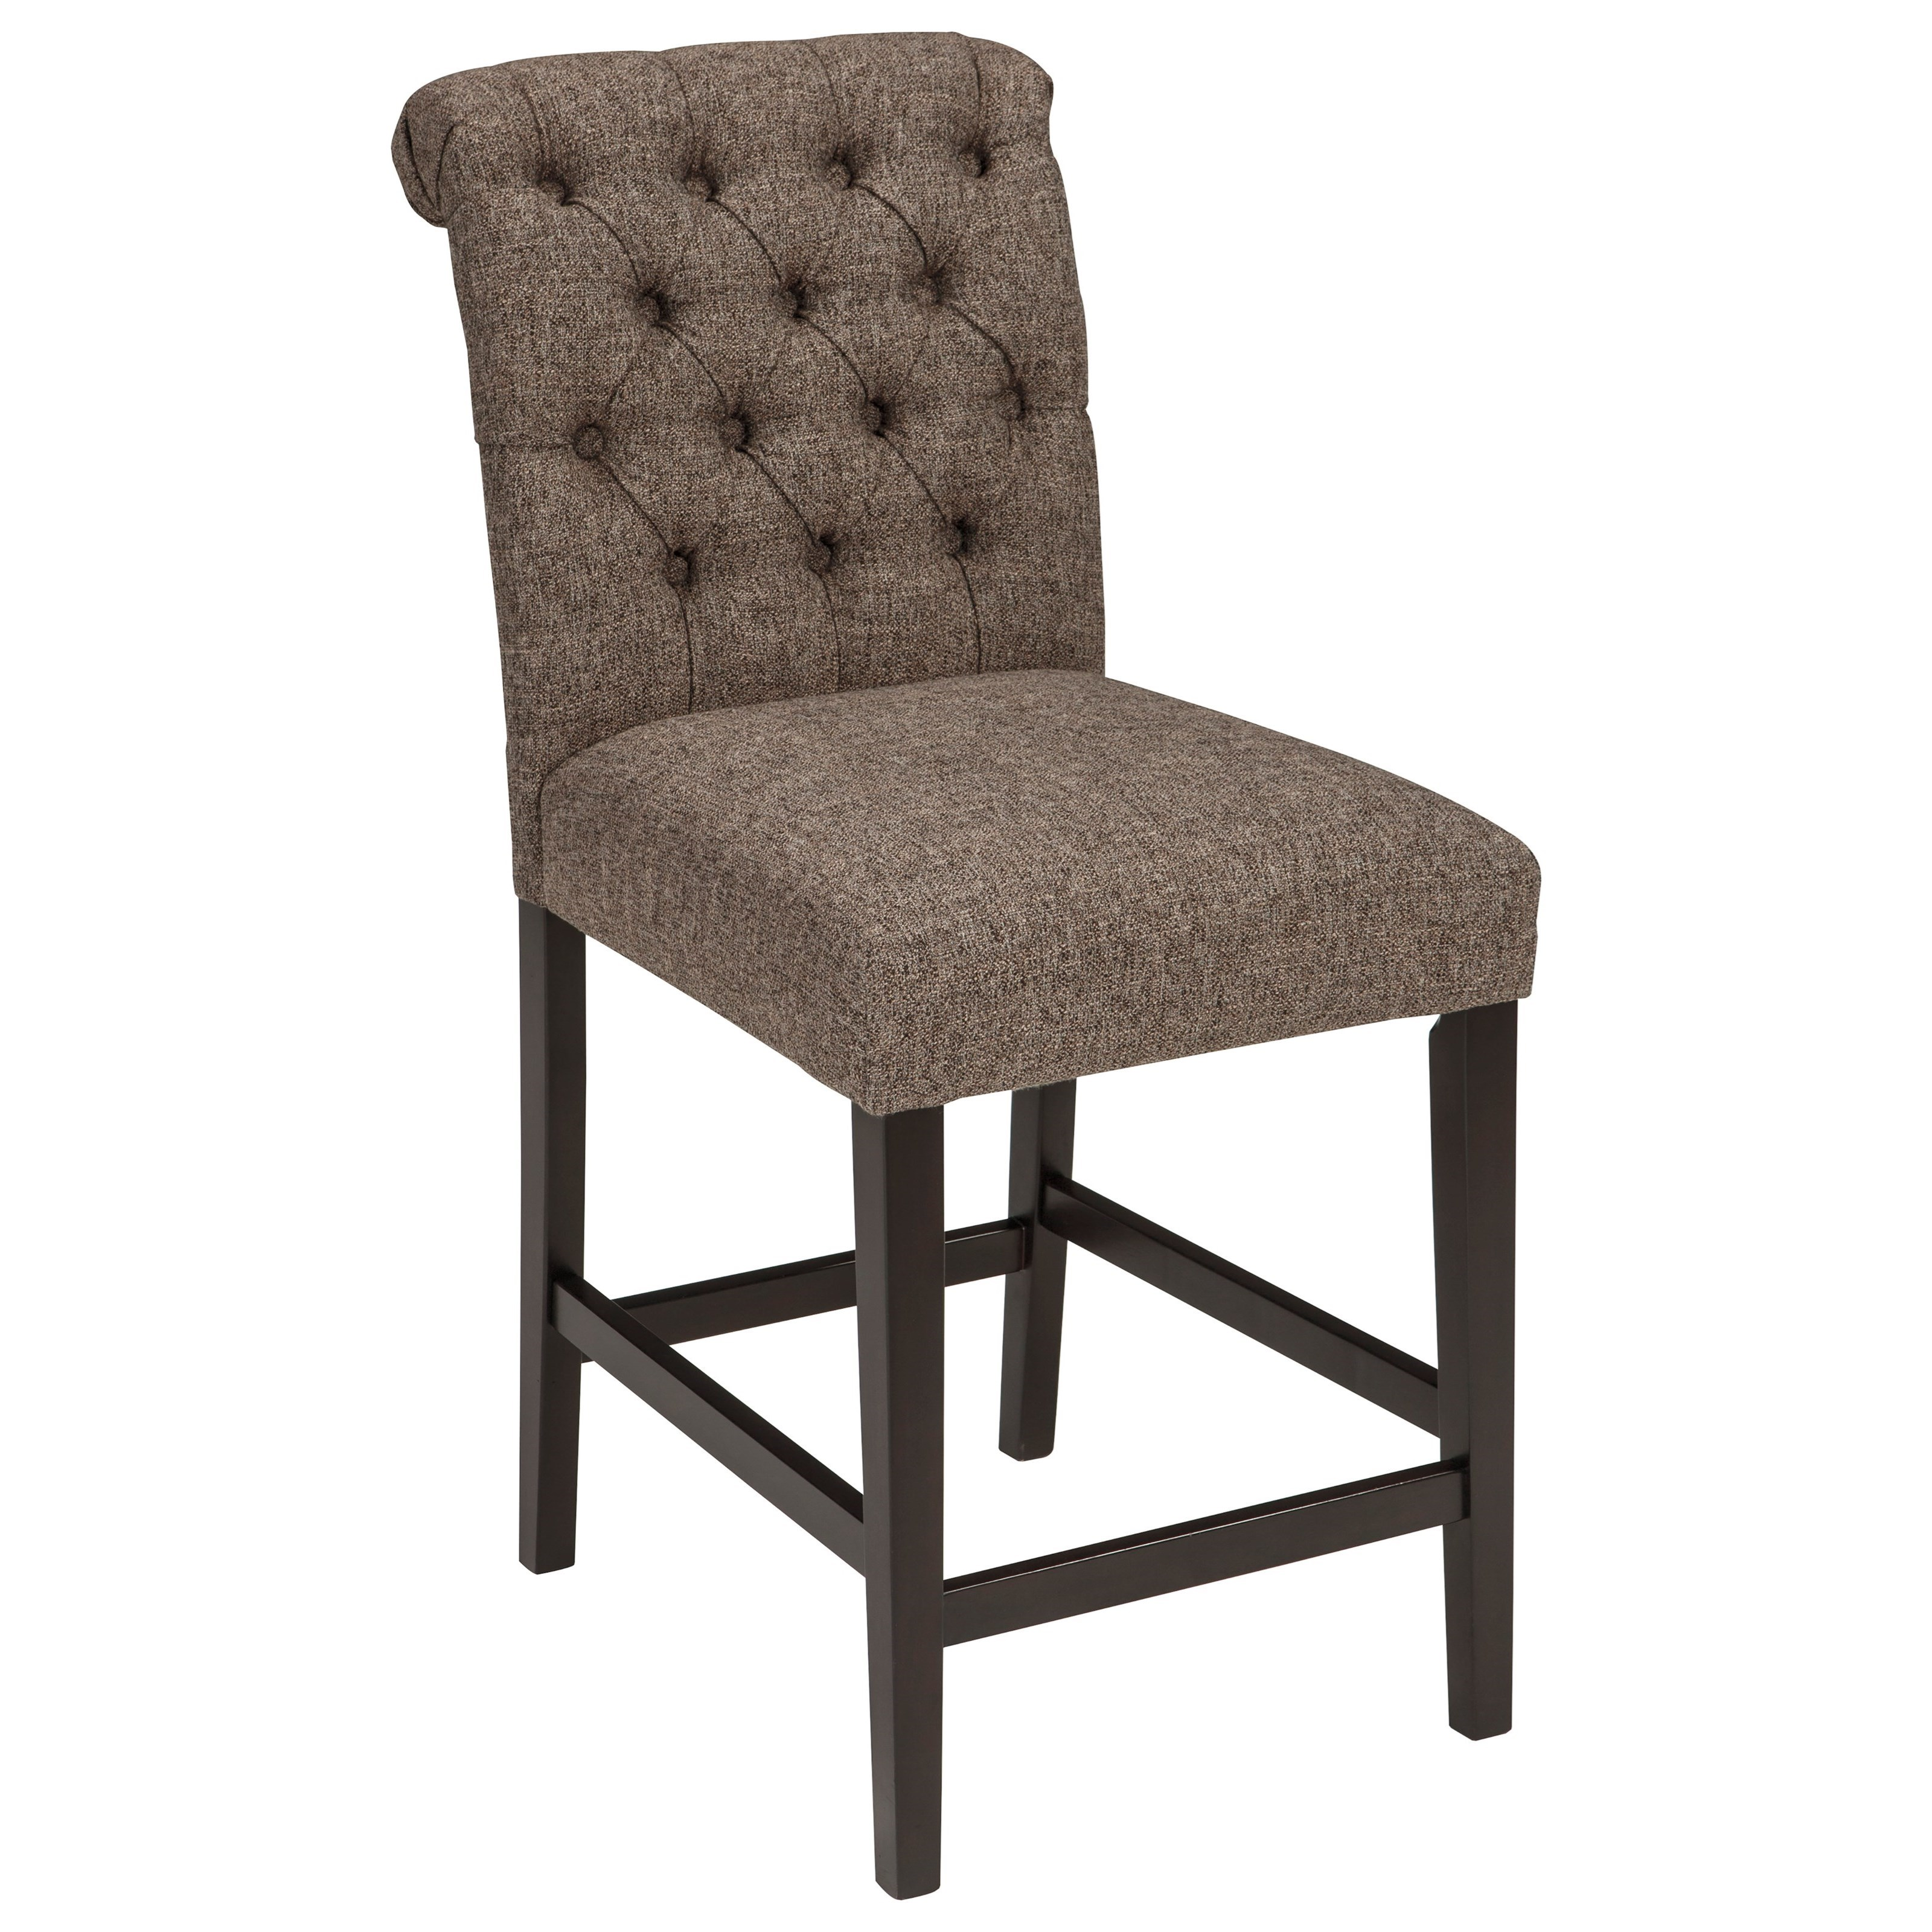 Tripton Upholstered Barstool by Signature Design by Ashley at Northeast Factory Direct